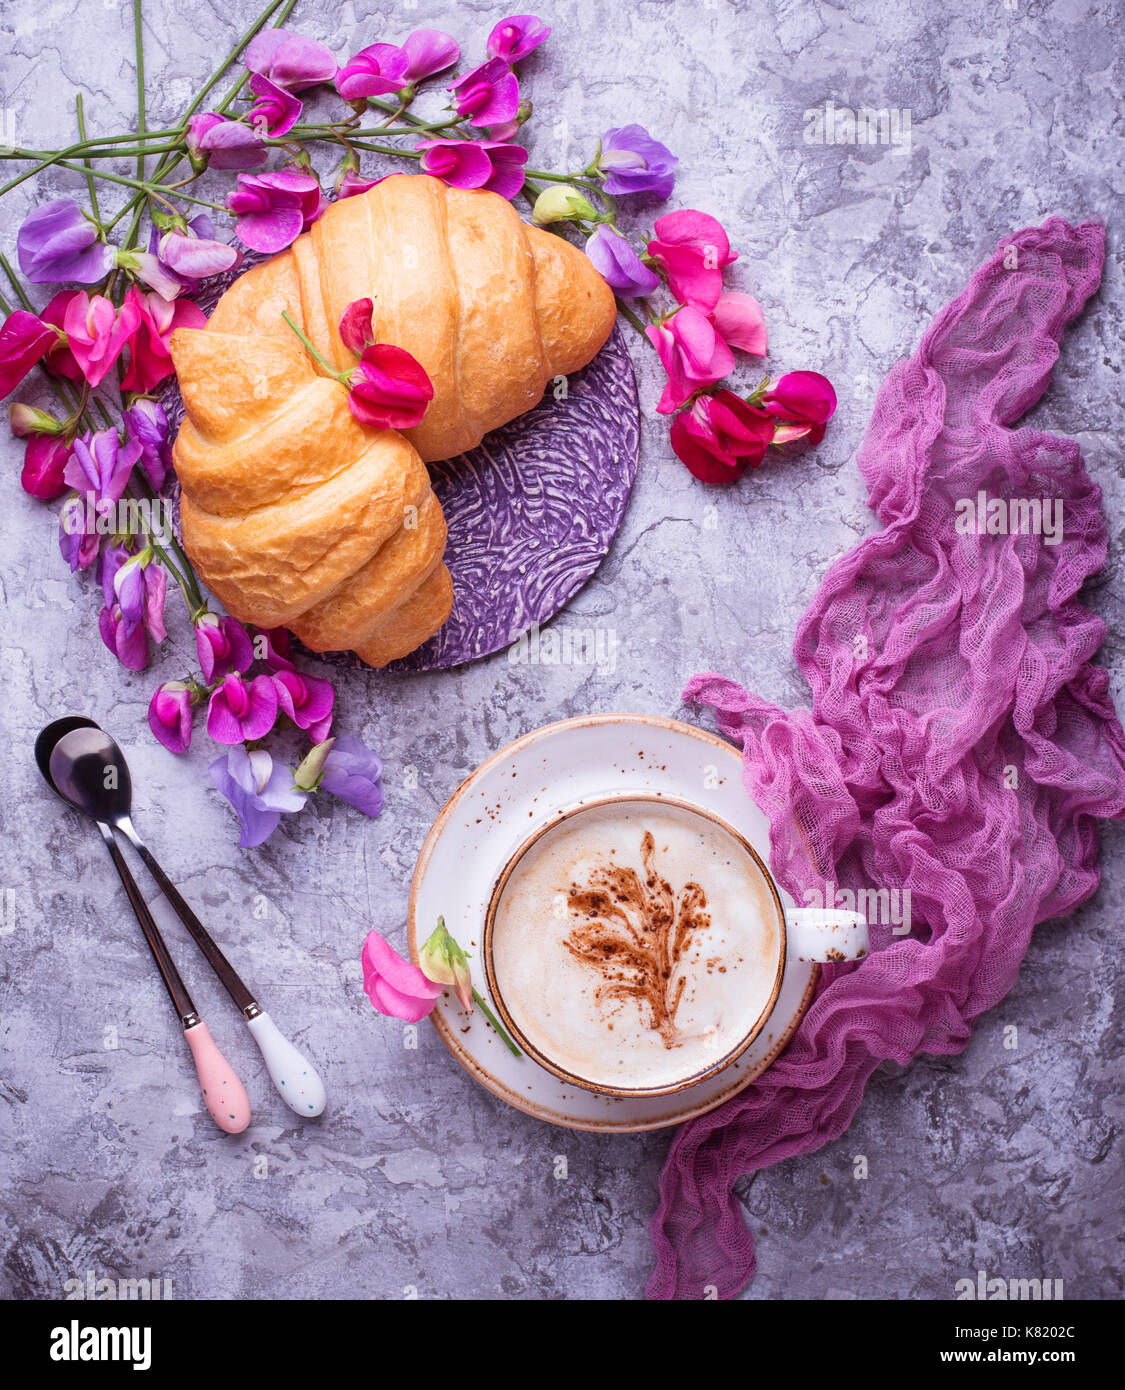 Coffee, croissants and flower.  - Stock Image